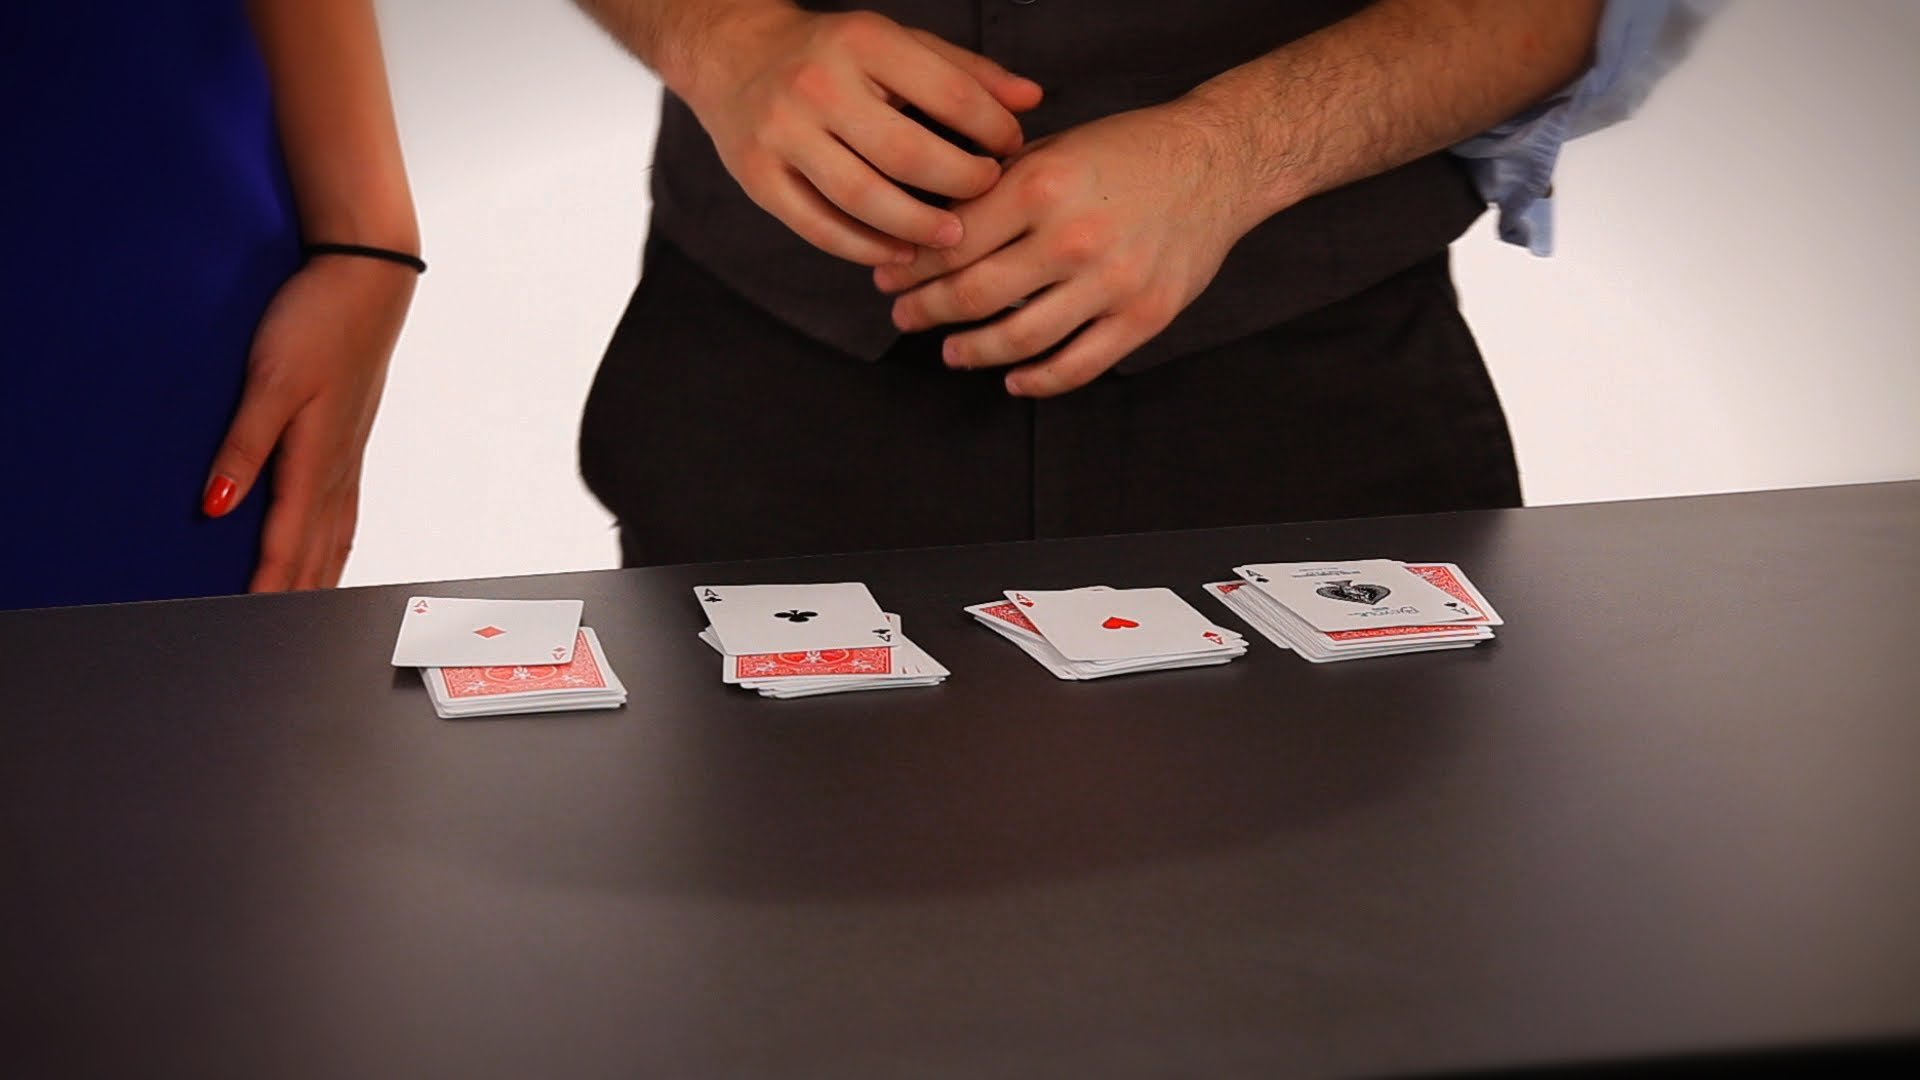 How-To-Do-The-Card-Trick